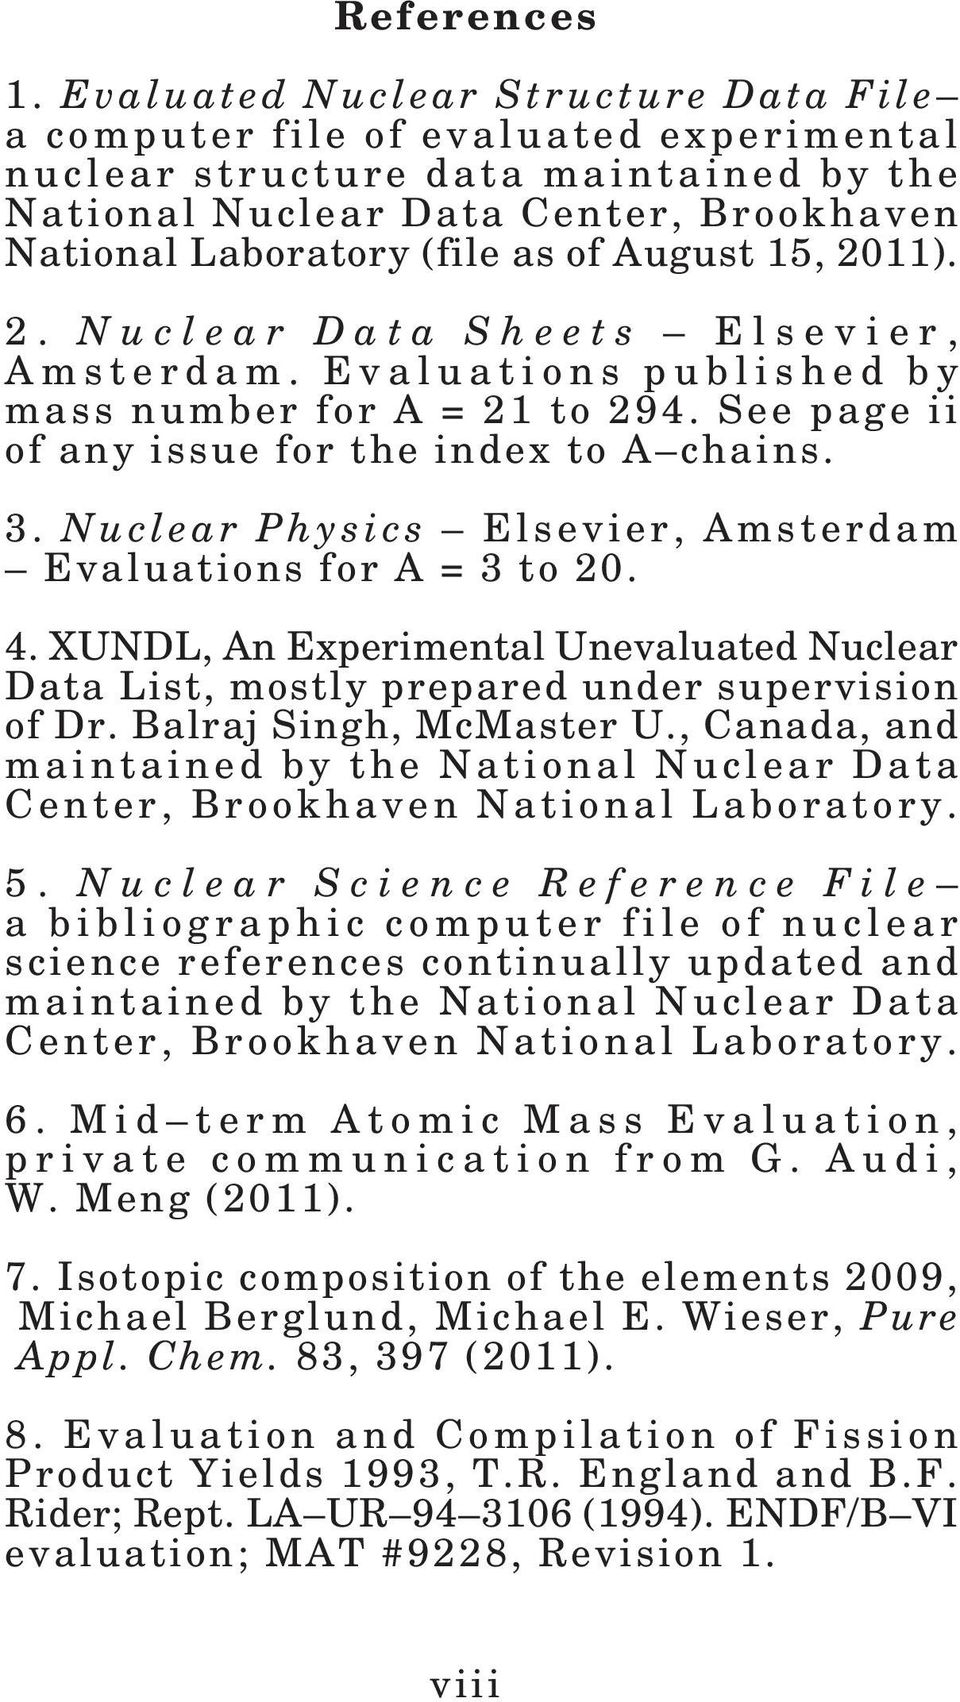 August 15, 2011). 2. Nuclear Data Sheets Elsevier, Amsterdam. Evaluations published by mass number for A = 21 to 294. See page ii of any issue for the index to A chains. 3.